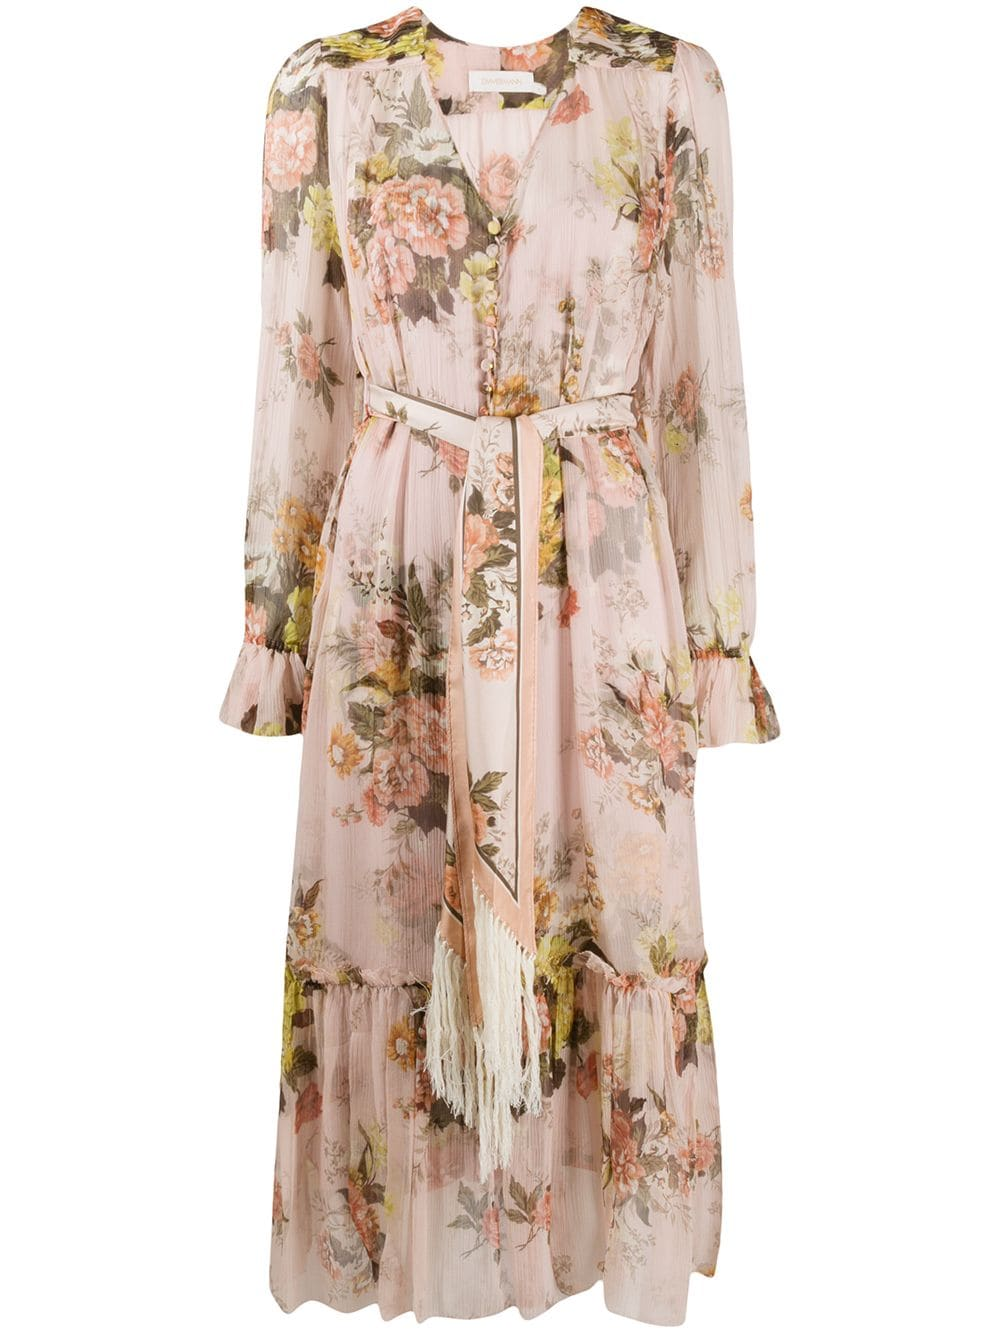 Zimmermann Brightside Floral Printed Dress We Select Dresses